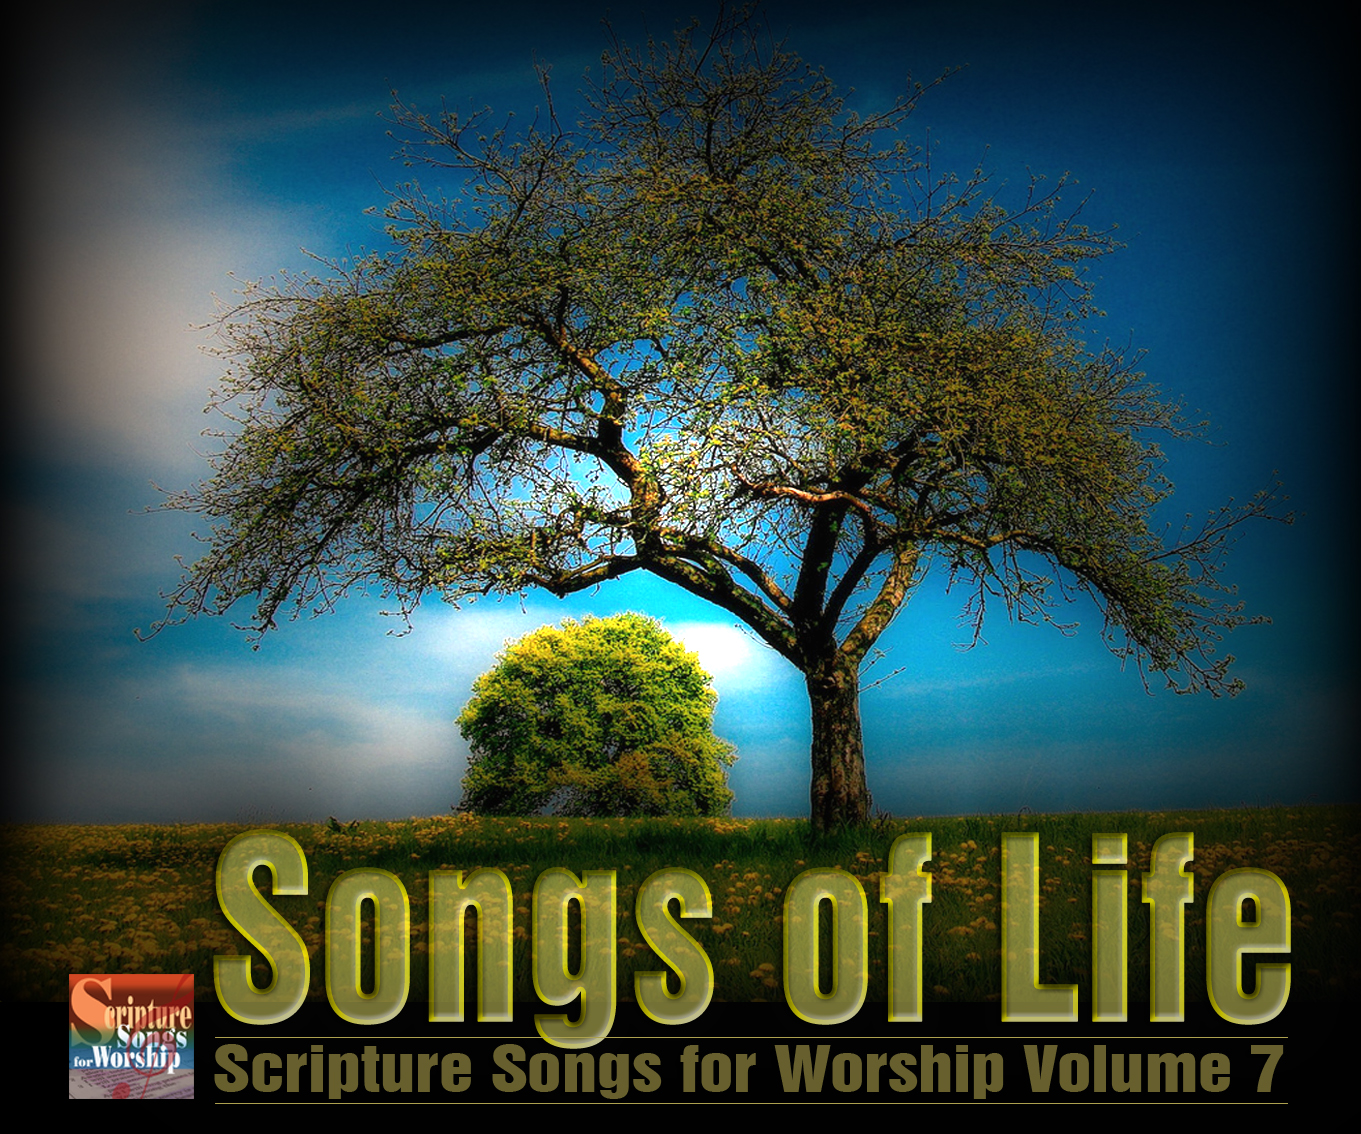 Scripture Songs for Worship : Songs of Life - NKJV Scripture